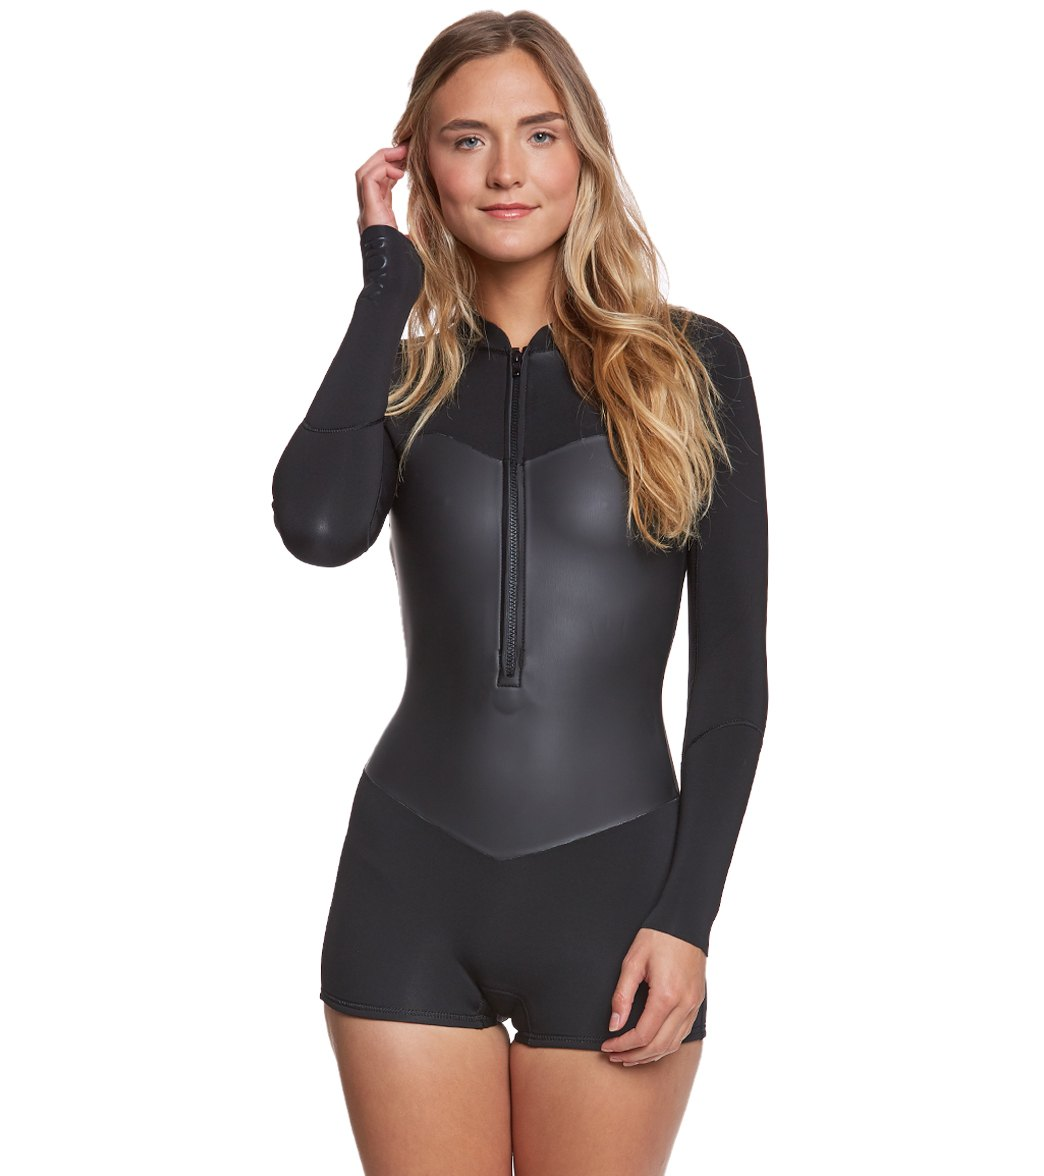 Roxy Women s 2.0 Satin Front Zip Long Sleeve Springsuit at SwimOutlet.com -  Free Shipping 5e0c2dd12